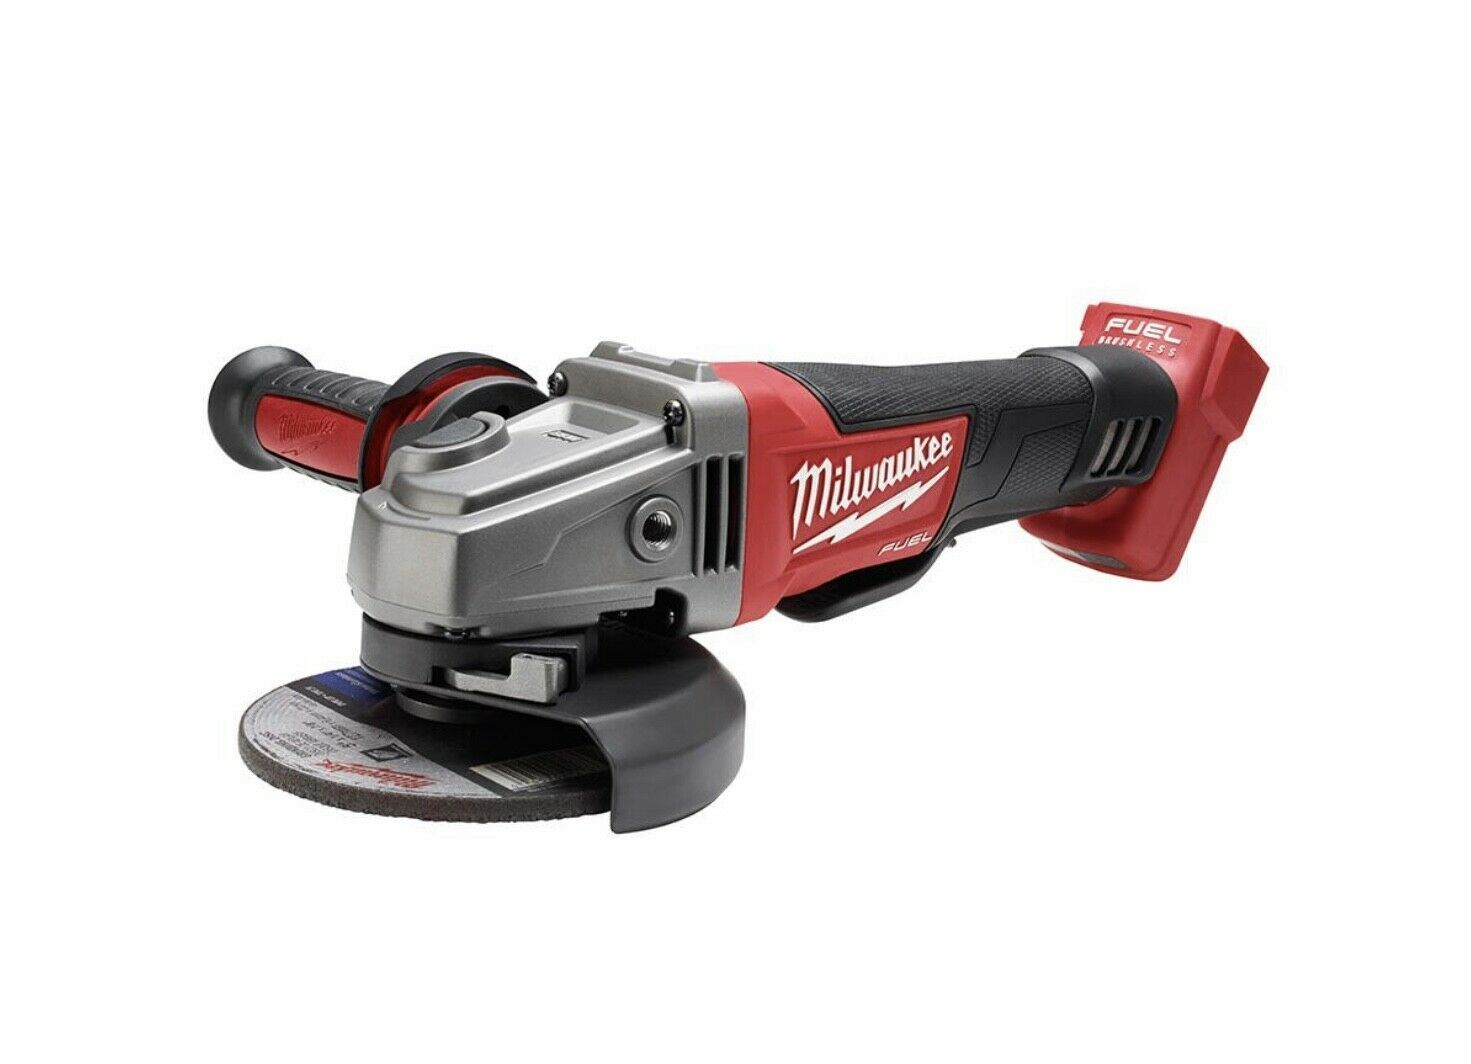 Primary image for Milwaukee M18 FUEL 18-Volt Lithium-Ion Brushless Cordless 4-1/2 in. / 5 in. Grin